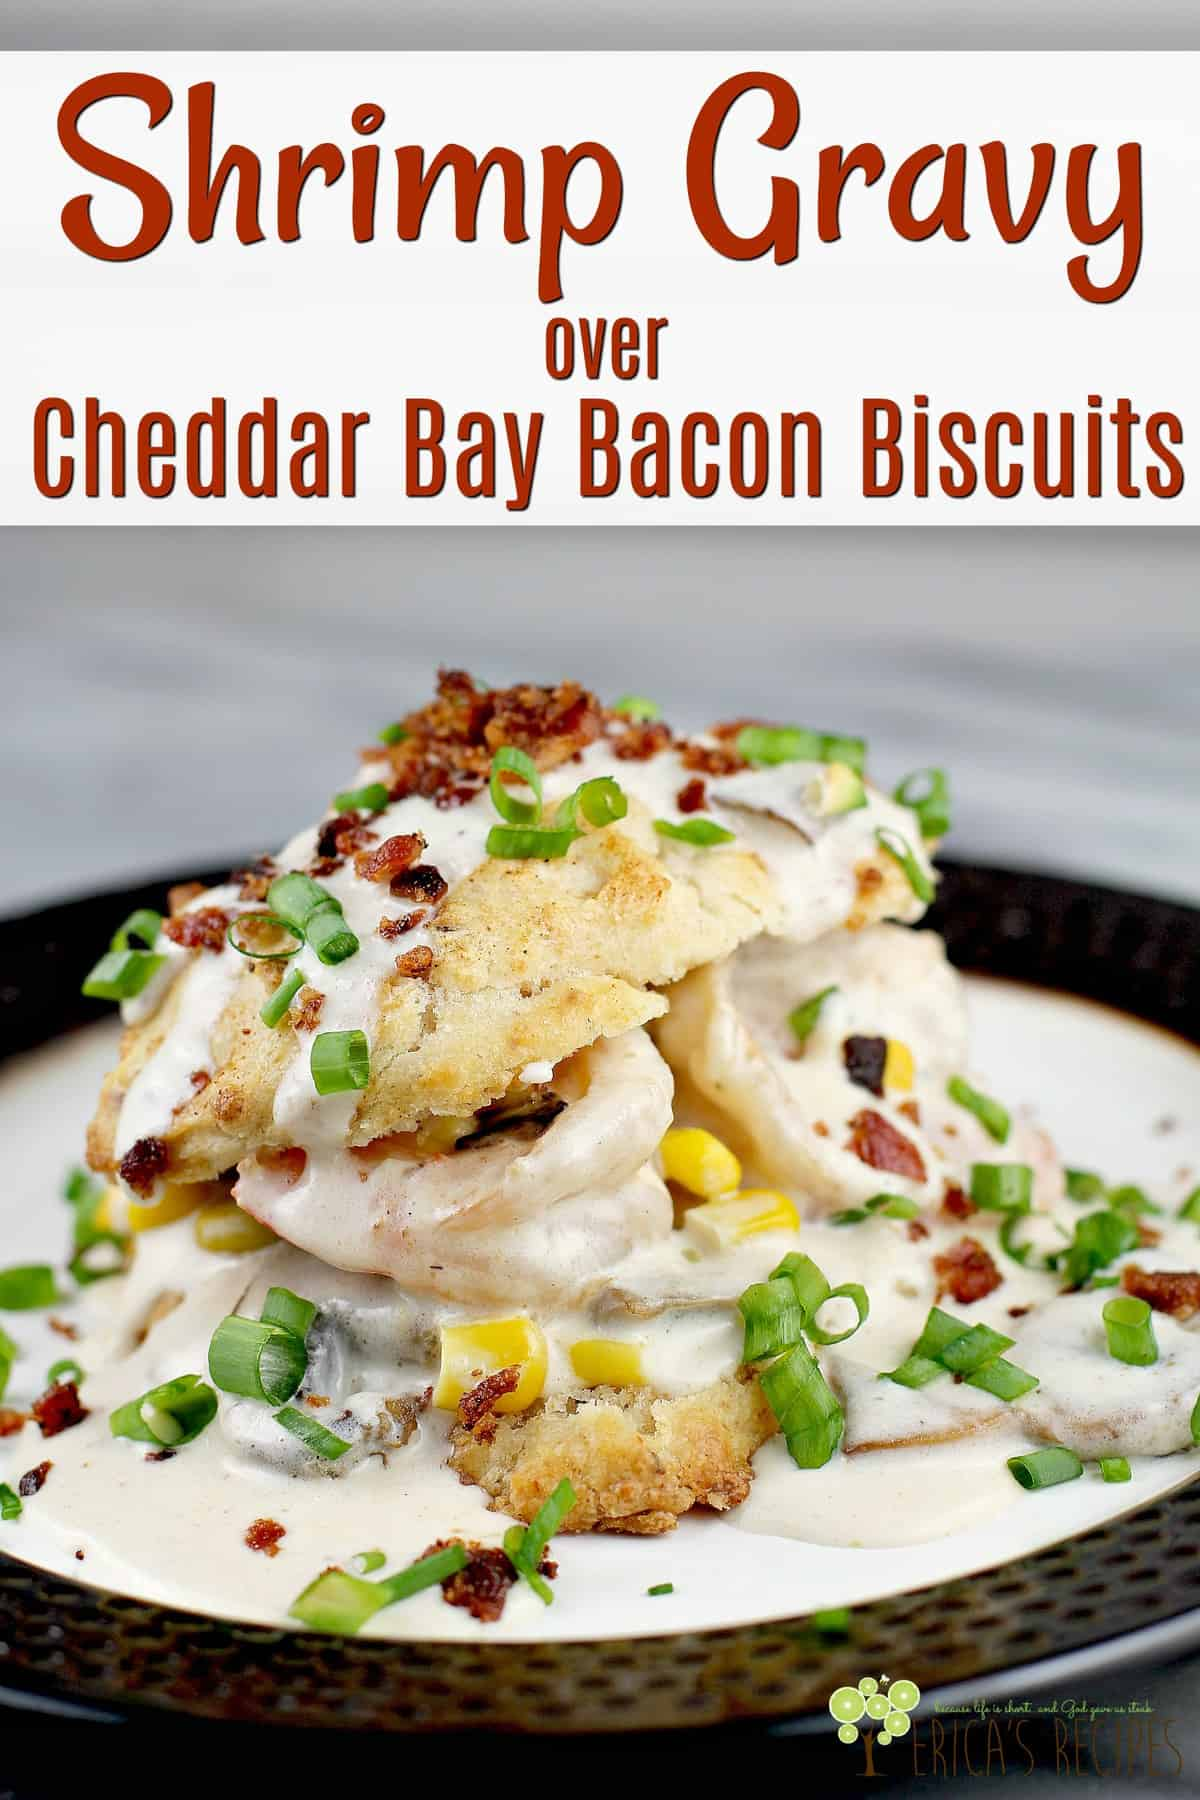 This epic recipe for Shrimp Gravy over Cheddar Bay Bacon Biscuits is as delicious as it is fun to make. Cream gravy with shrimp, over copycat Red Lobster biscuits made even better with bacon. Make this biscuits and gravy recipe for a delicious, creative seafood recipe with a low-country vibe. #breakfast #redlobstercopycat #biscuitsandgravy #cheddarbaybiscuits #shrimpgravy #food #seafoodrecipe #shrimprecipe #cheddarbaconbiscuits